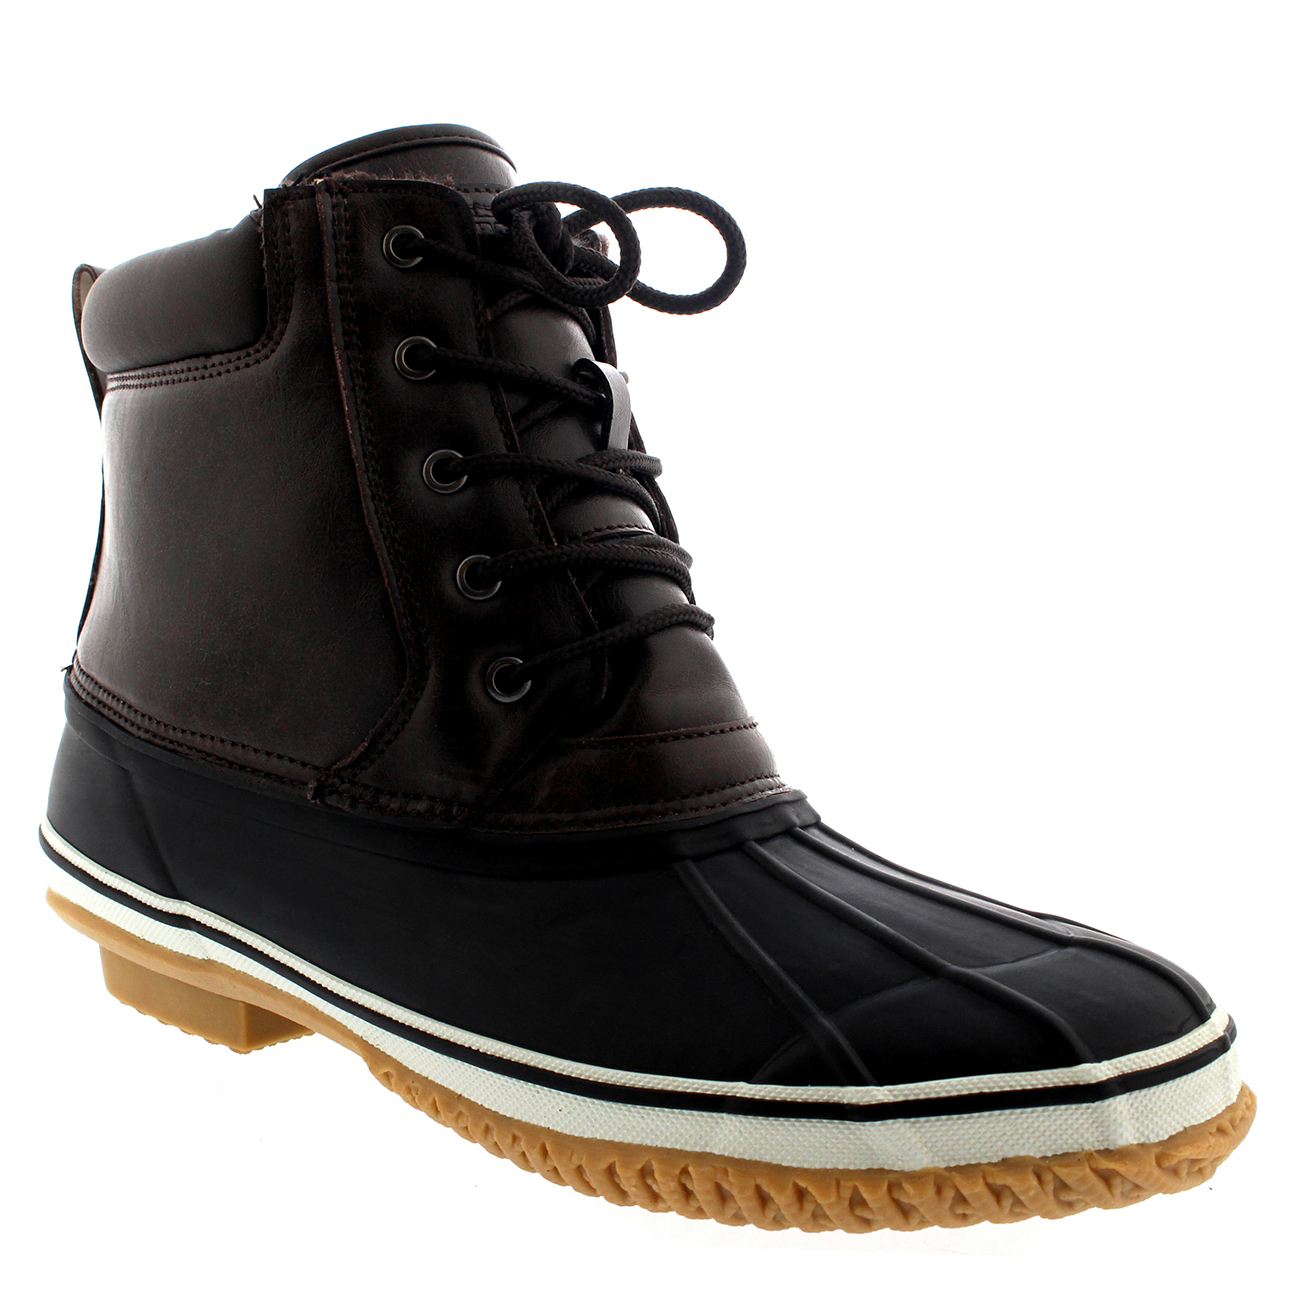 Mens Winter Boots  Mens Snow Boots  Clarks